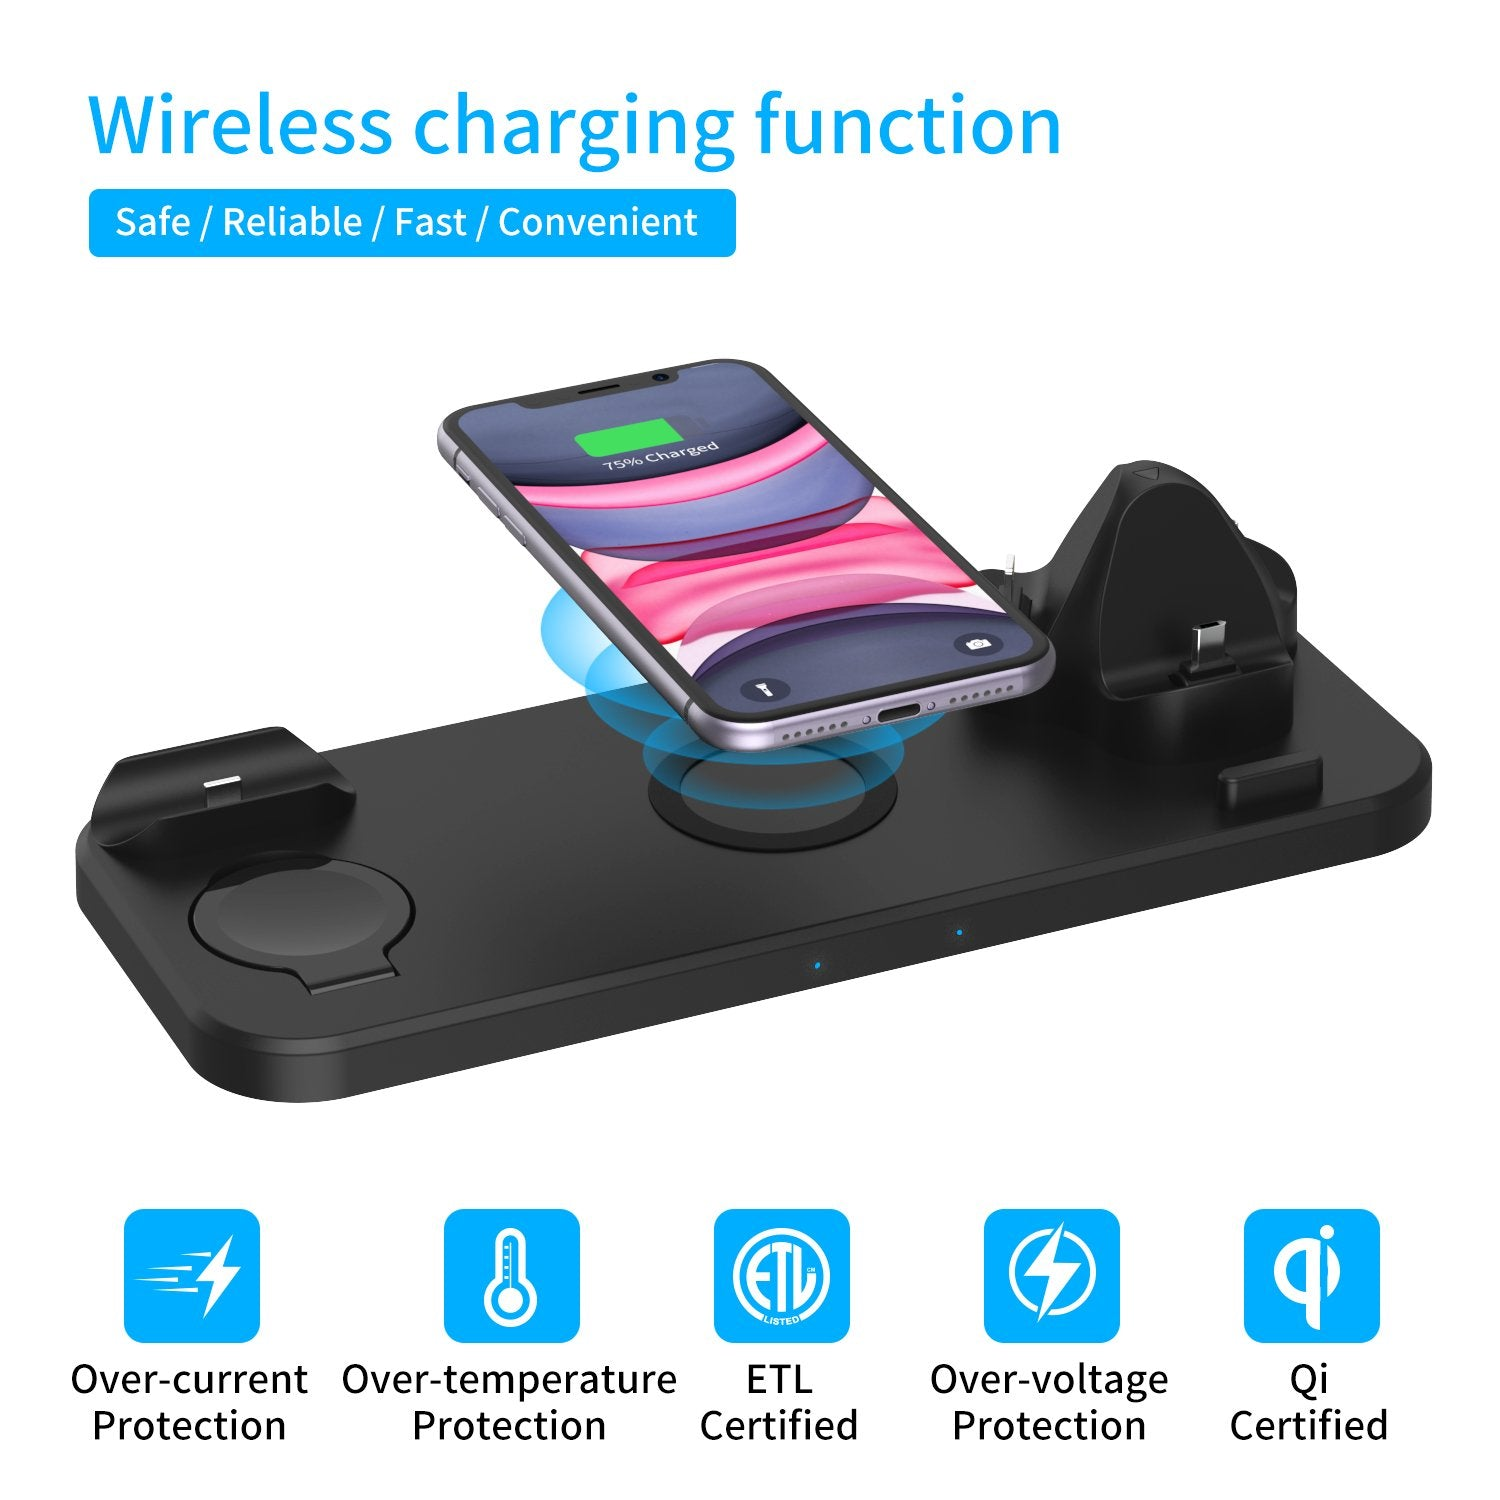 6-in-1 Qi-Certified QC3.0 Wireless Charging Station, with iWatch Holder, 360°Rotatable Design and Max 18W Power, for Apple Watch, Airpods, iPhone and All Qi-Enabled Devices